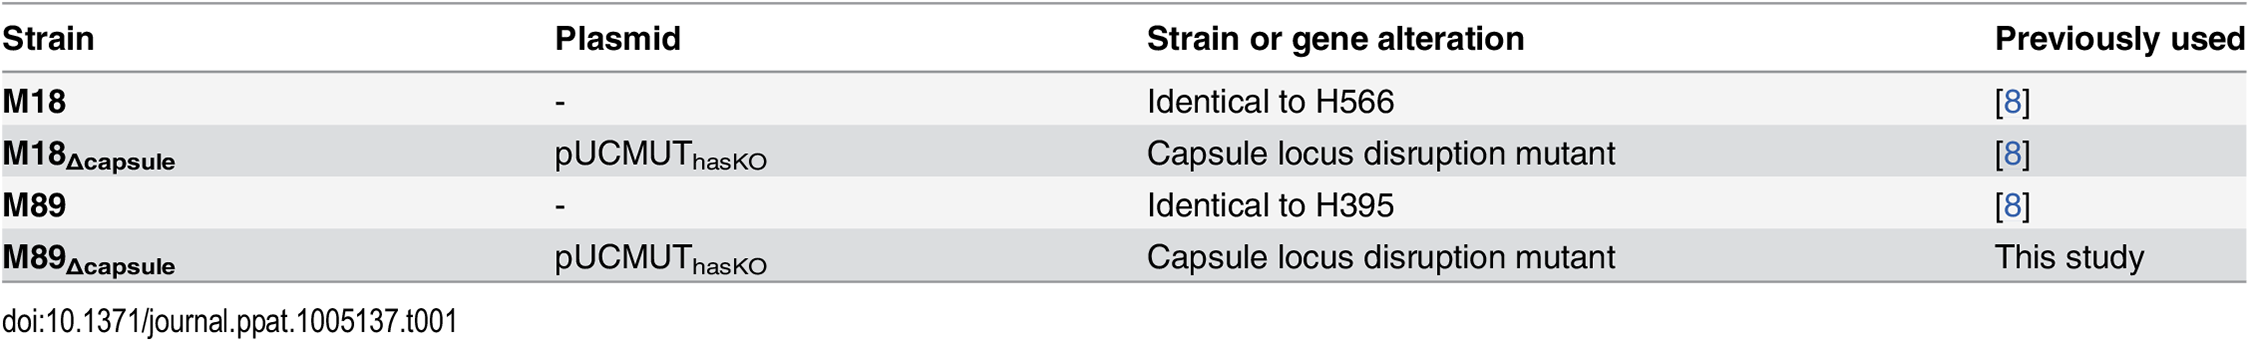 Bacterial strains used in this study.